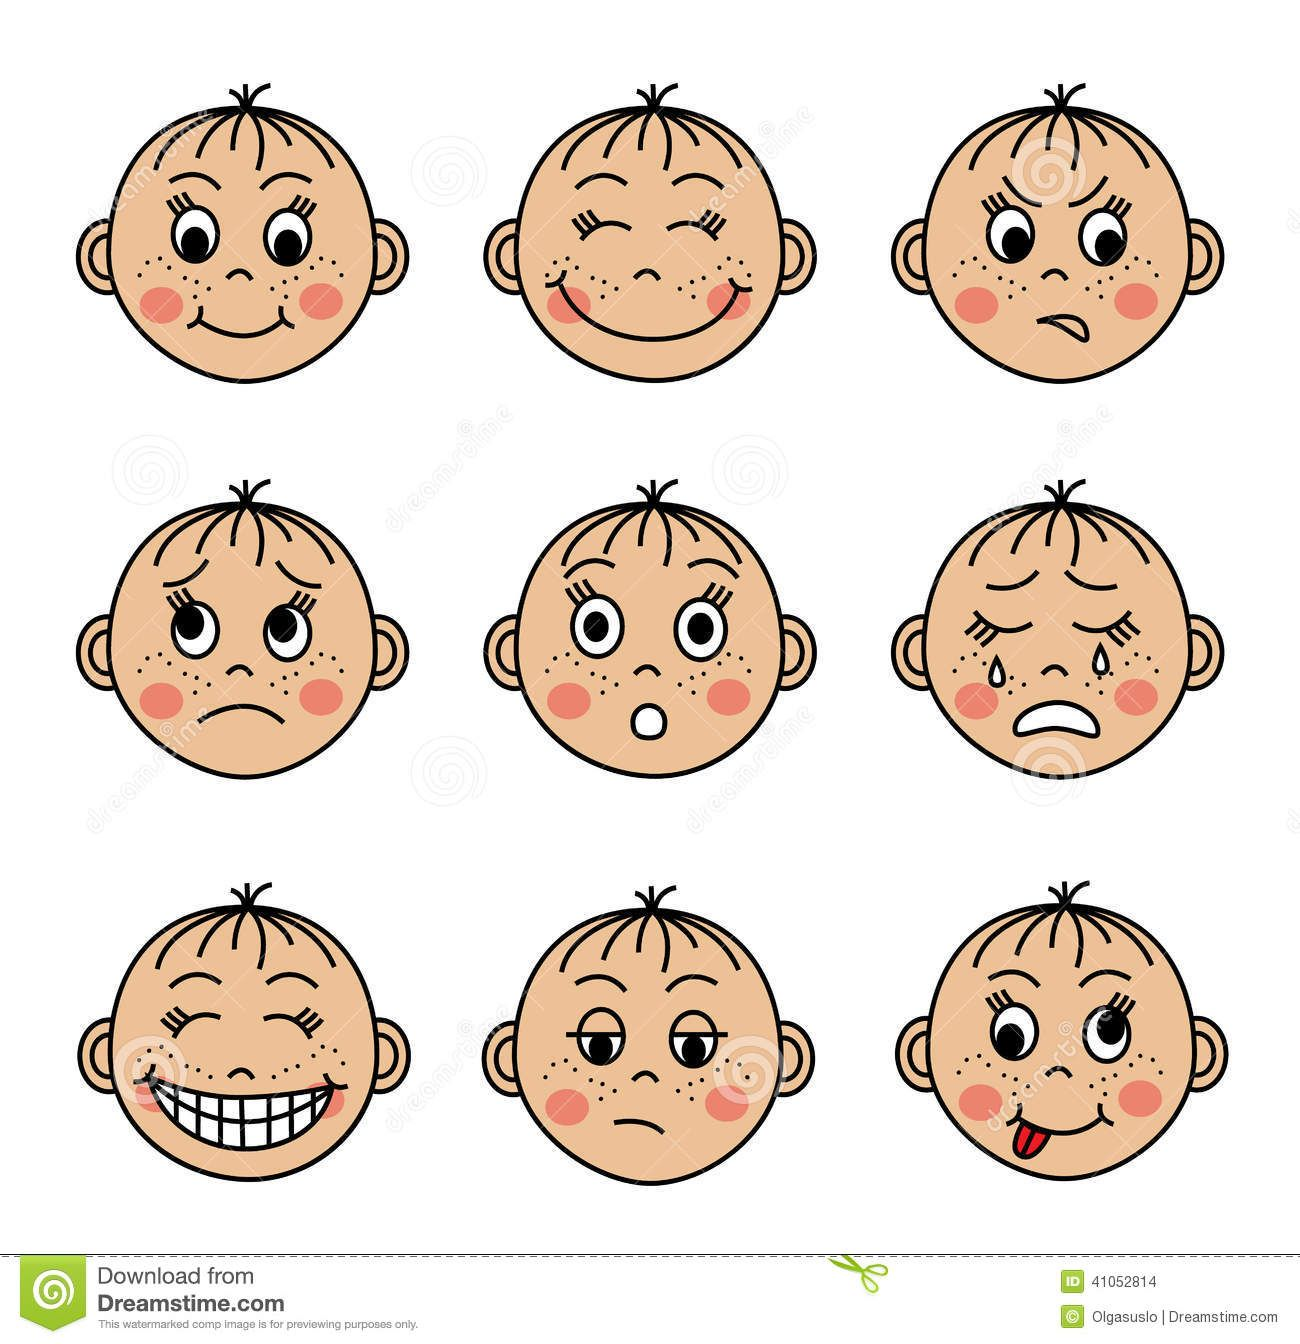 Feeling faces clipart Clipart Collection.